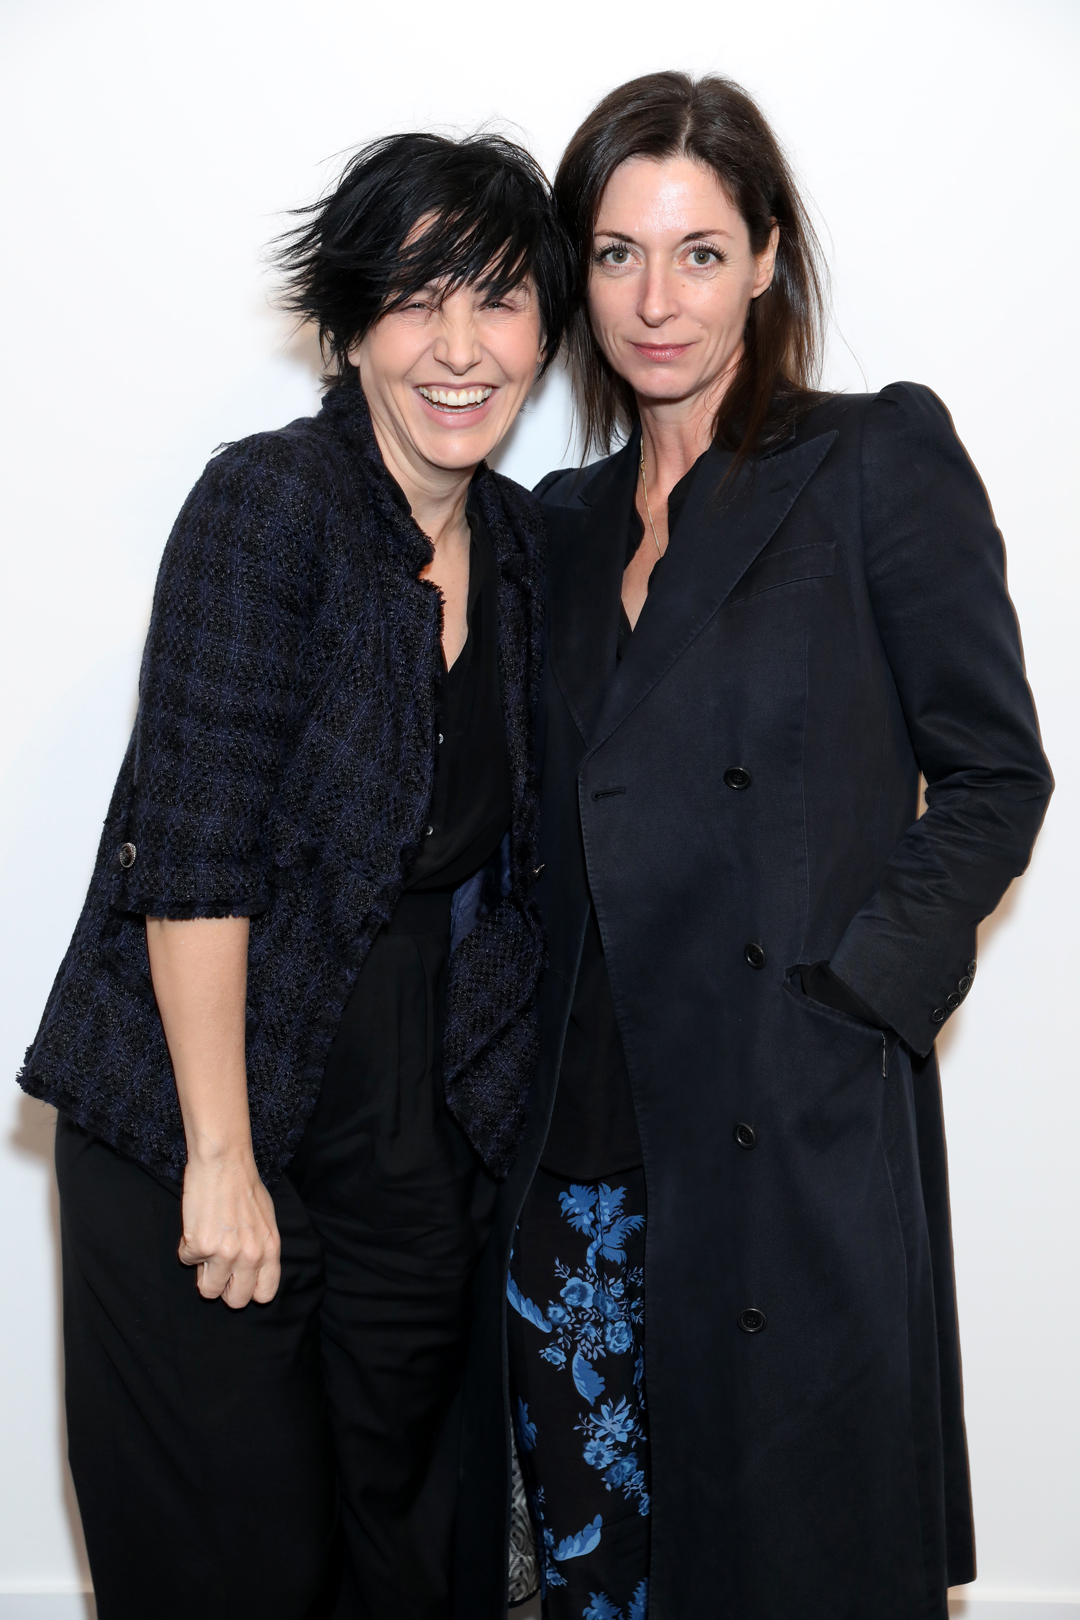 Sharleen Spiteri and Mary McCartney at Sotheby's last night